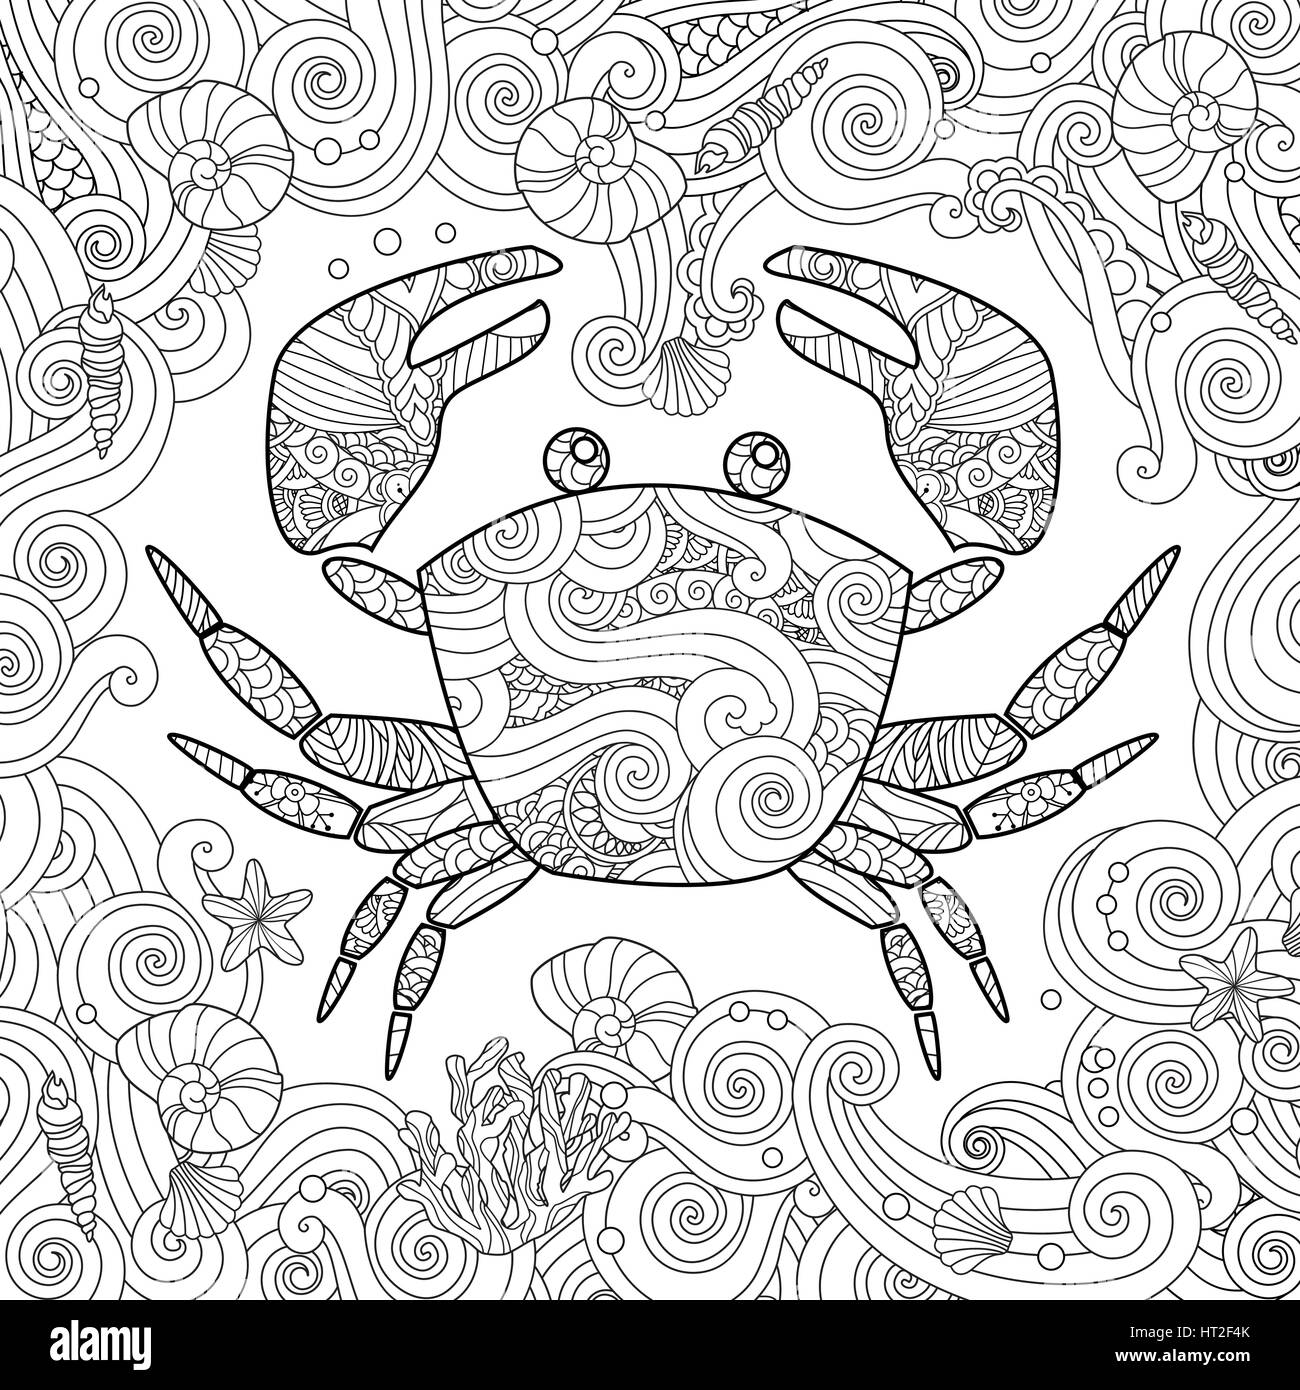 Coloring Page Ornate Crab Isolated On White Background